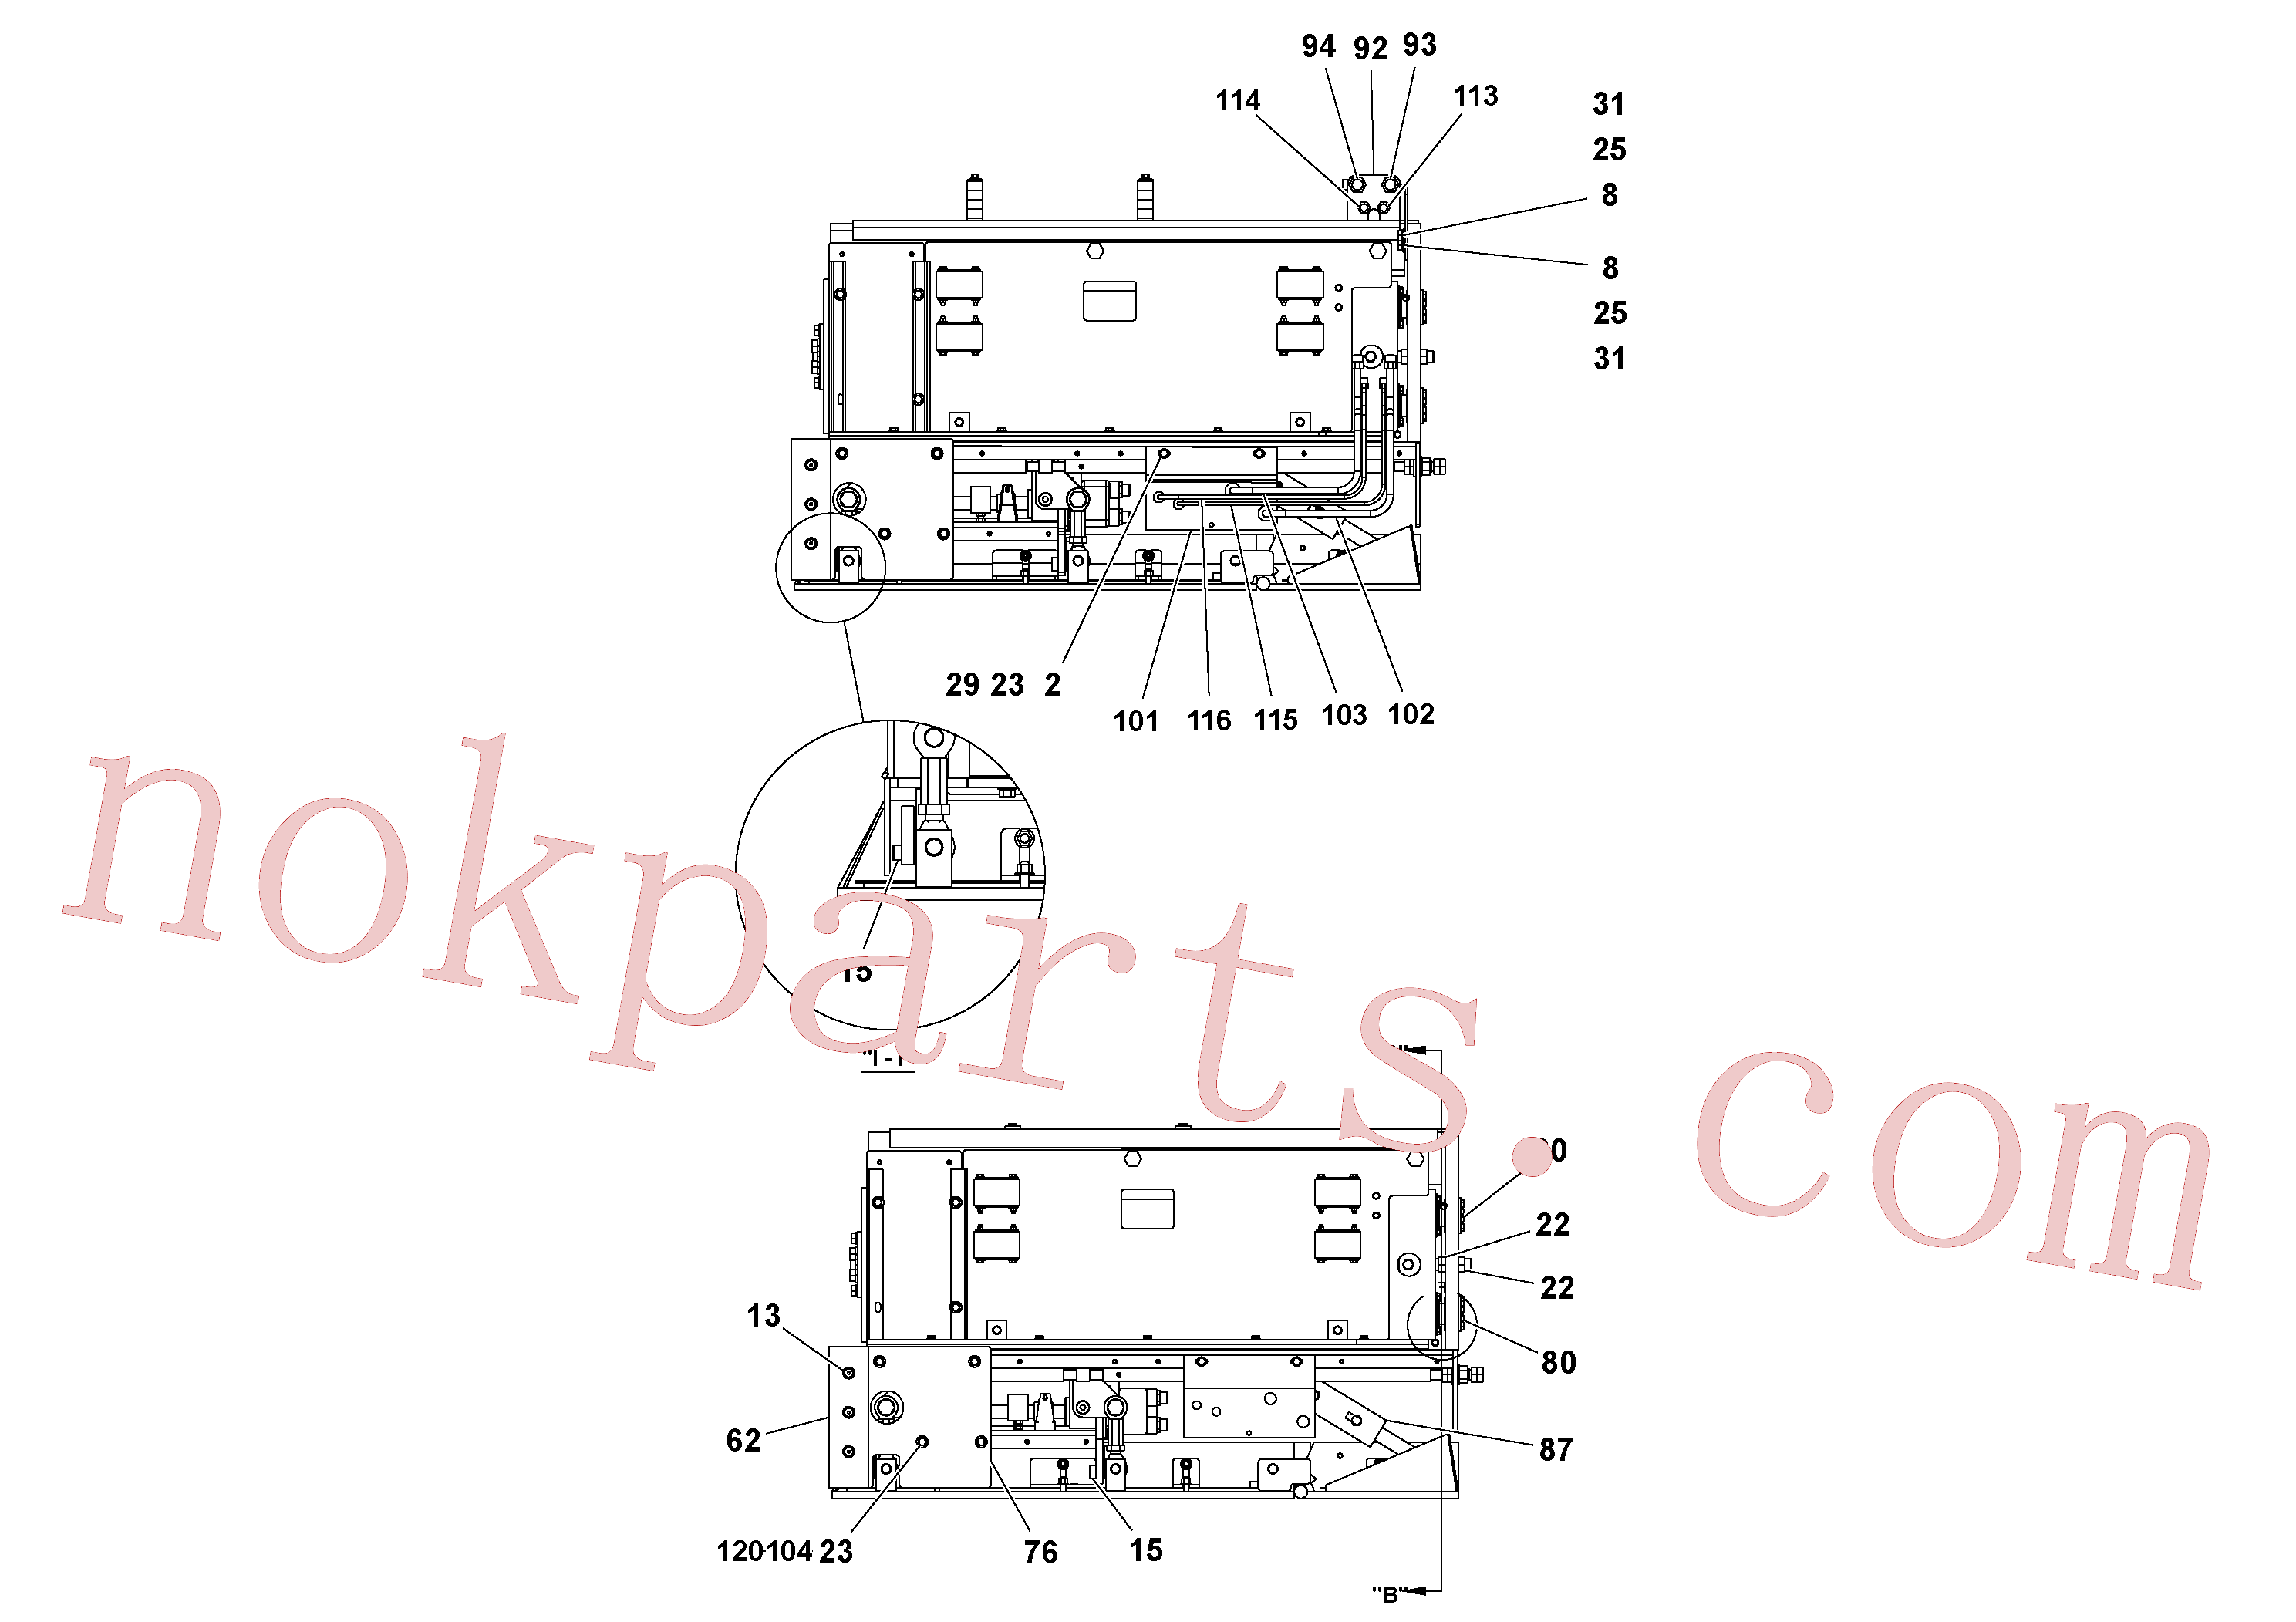 RM20328084 for Volvo 4' Extension Assembly(1036874 assembly)